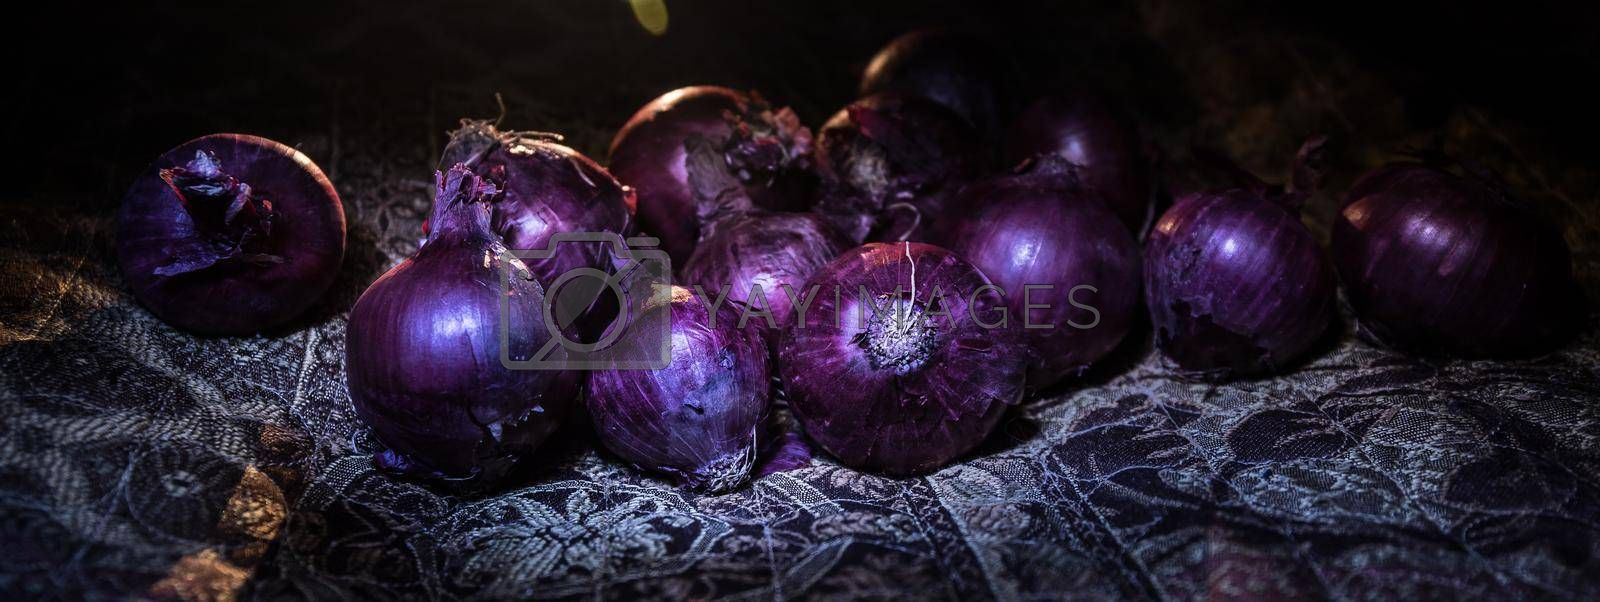 Onions in dark. Vegetable food, vegetarian food concept. Selective focus by Zeferli